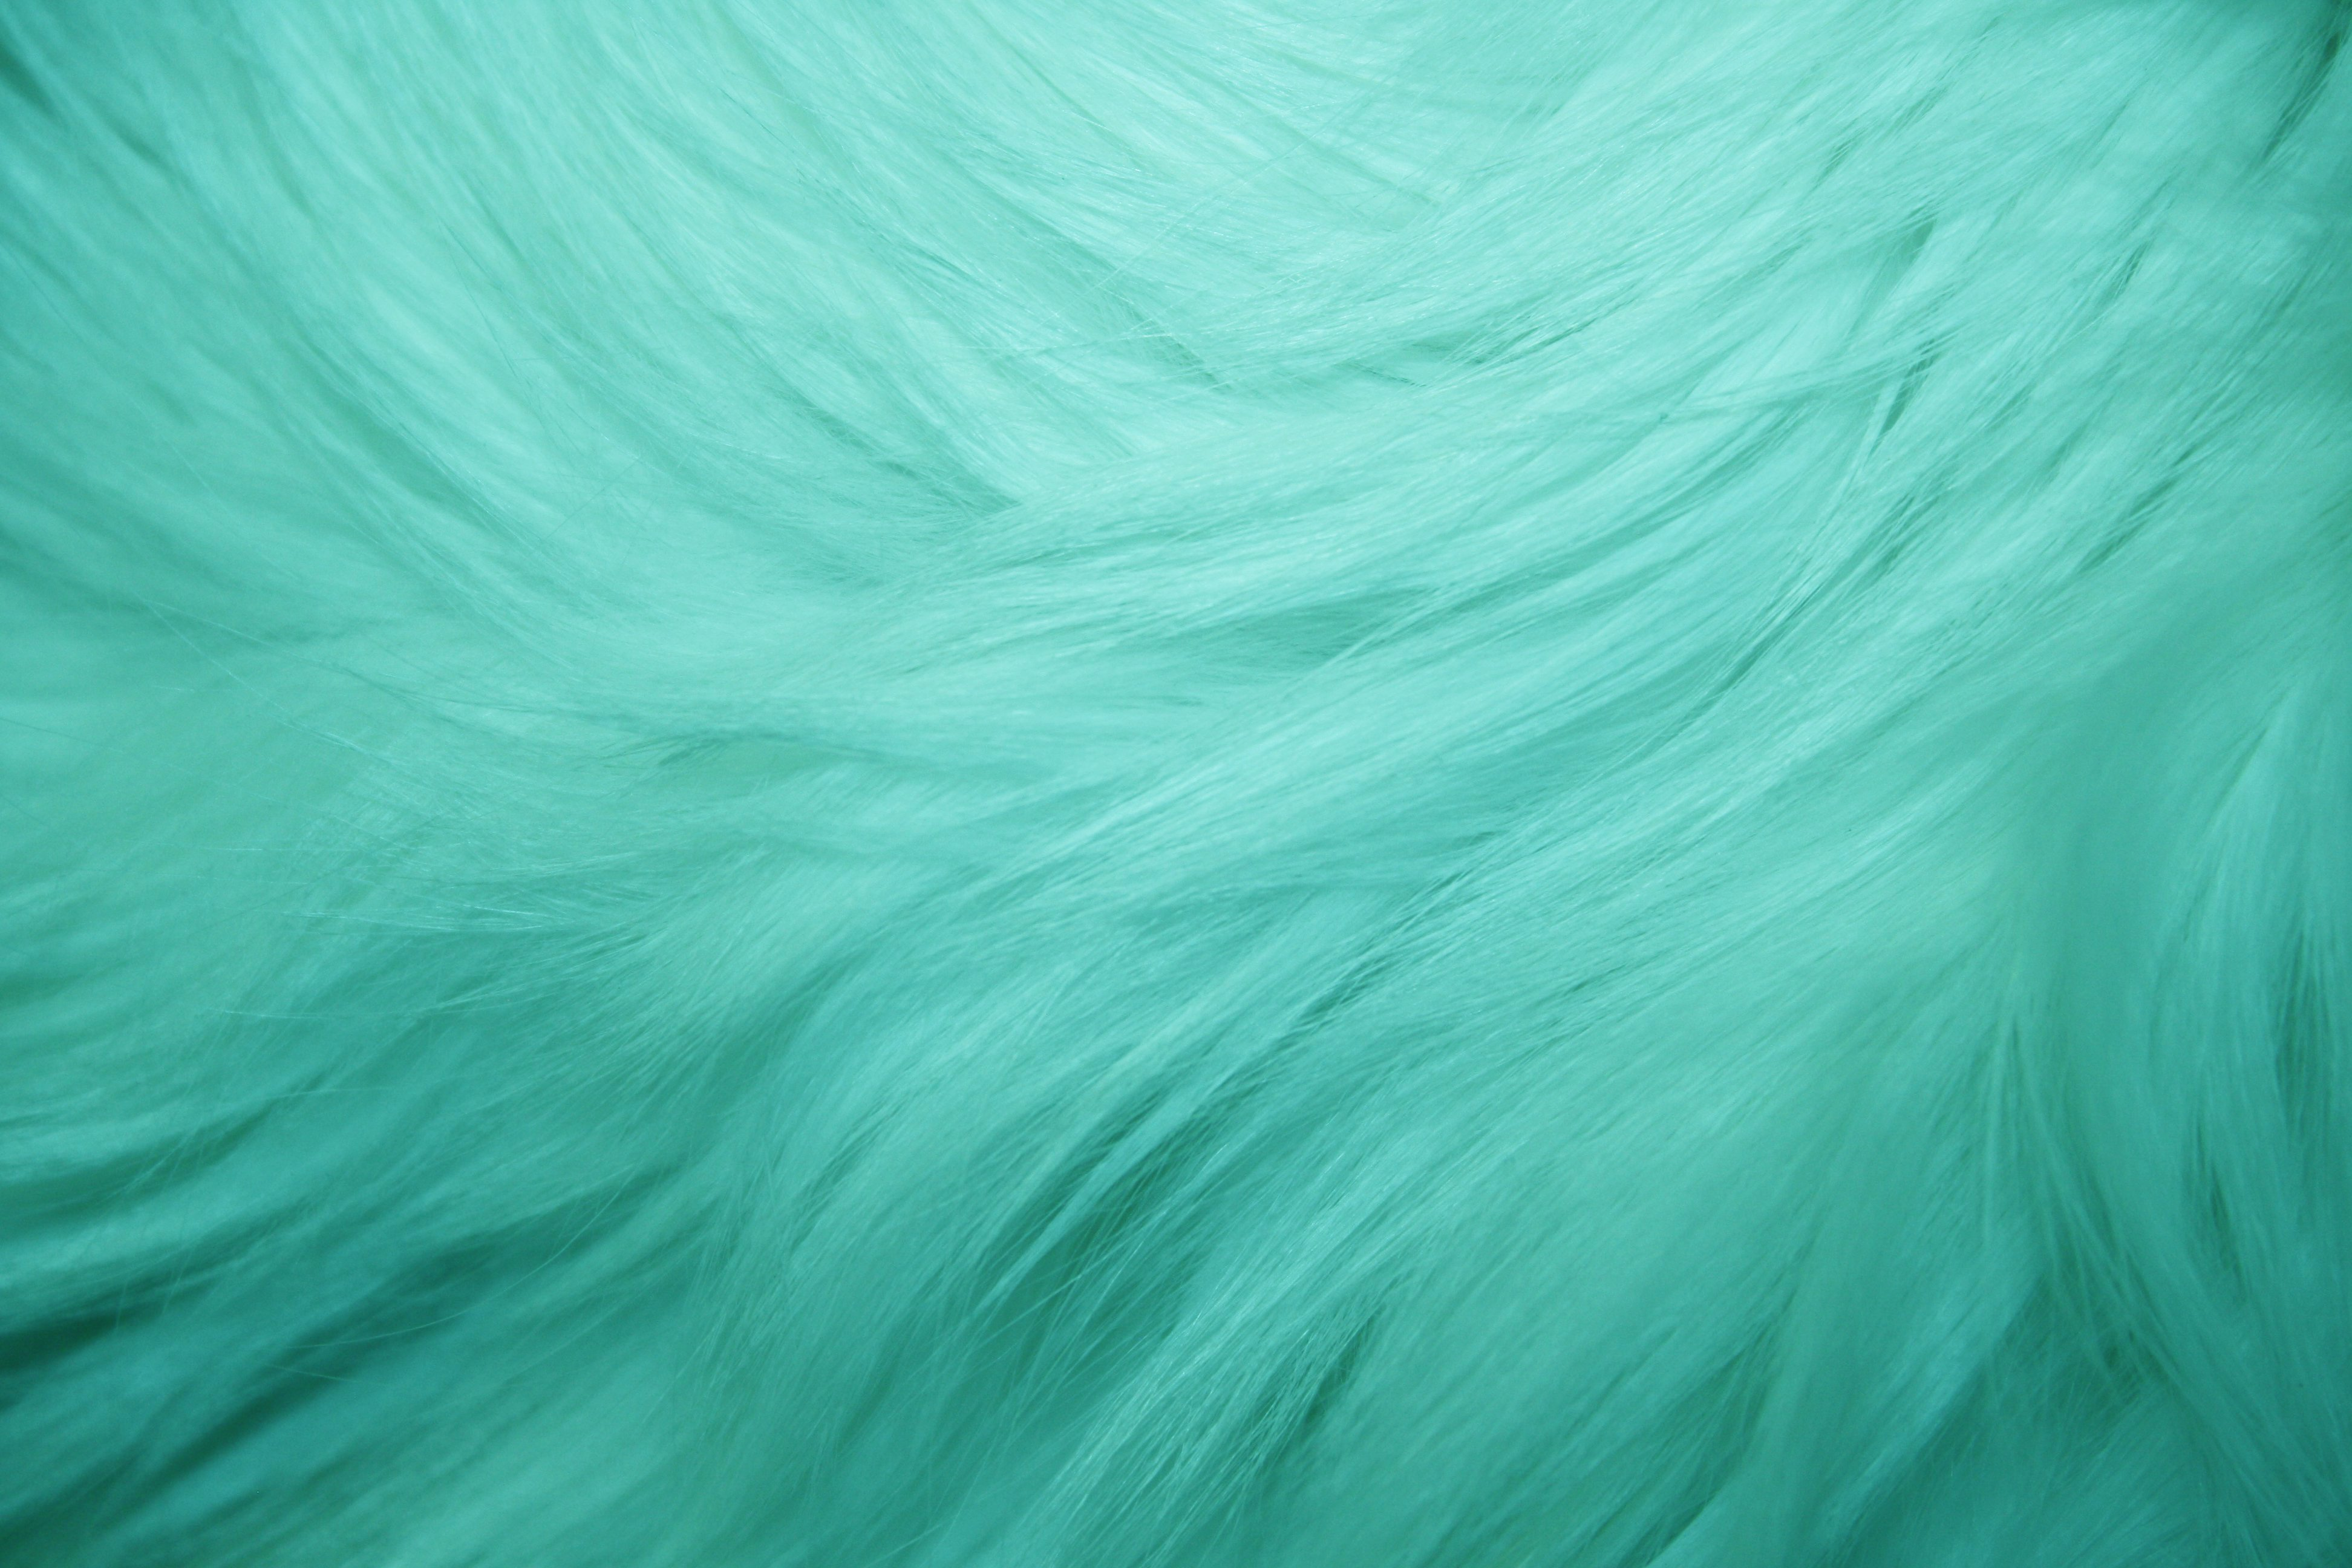 teal fur texture picture